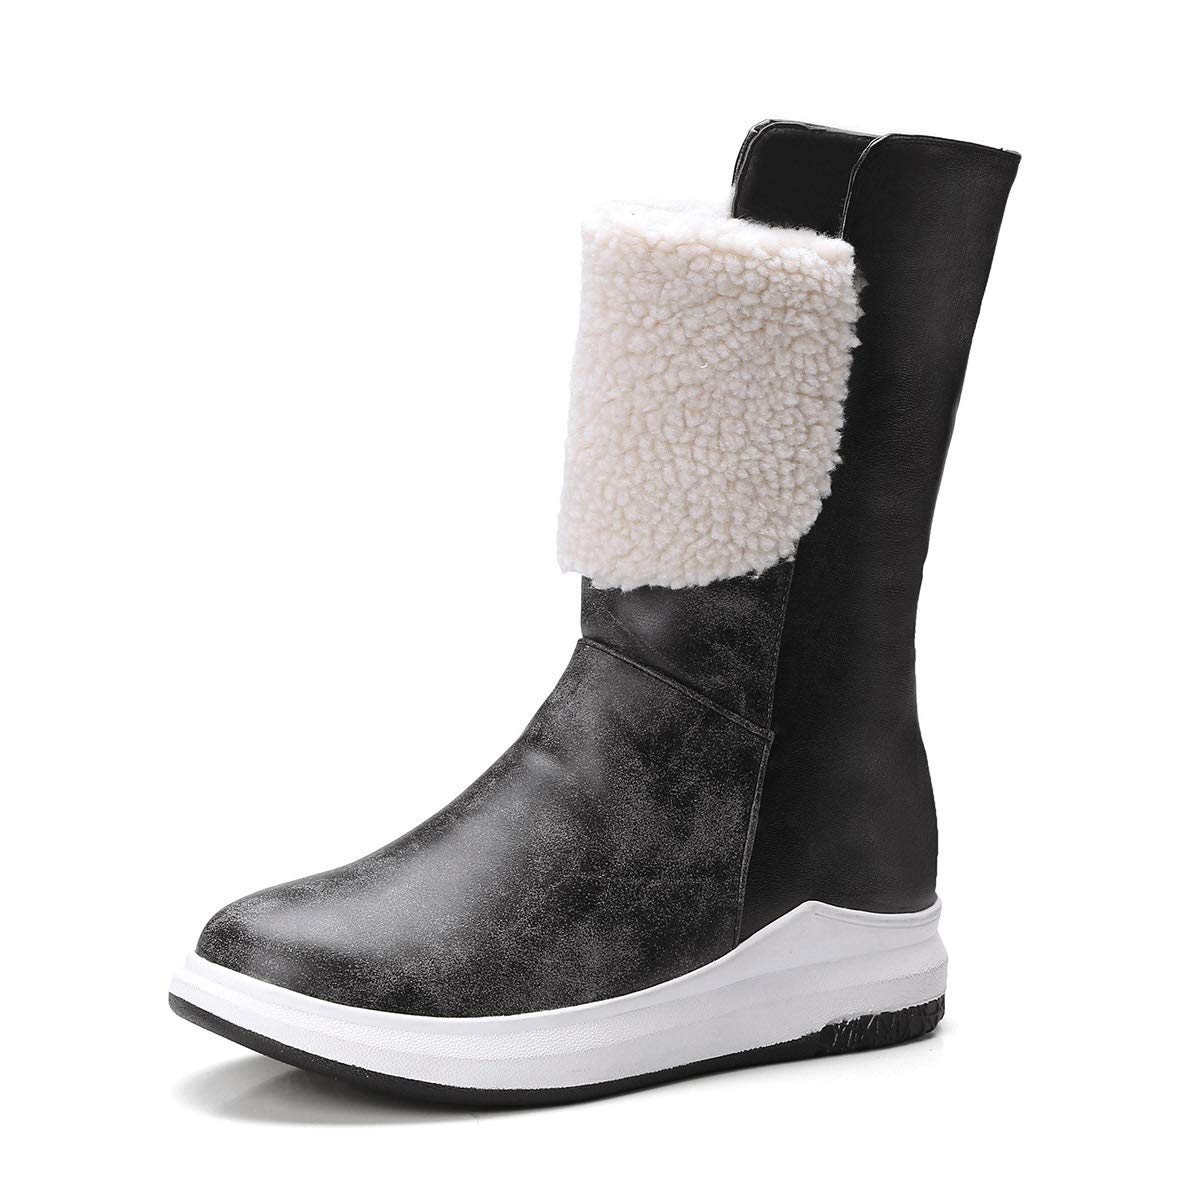 DANDANJIE Womens Snow Boots Casual Wedge Heel Fashion Ankle Boots Black Brown Fall /& Winter